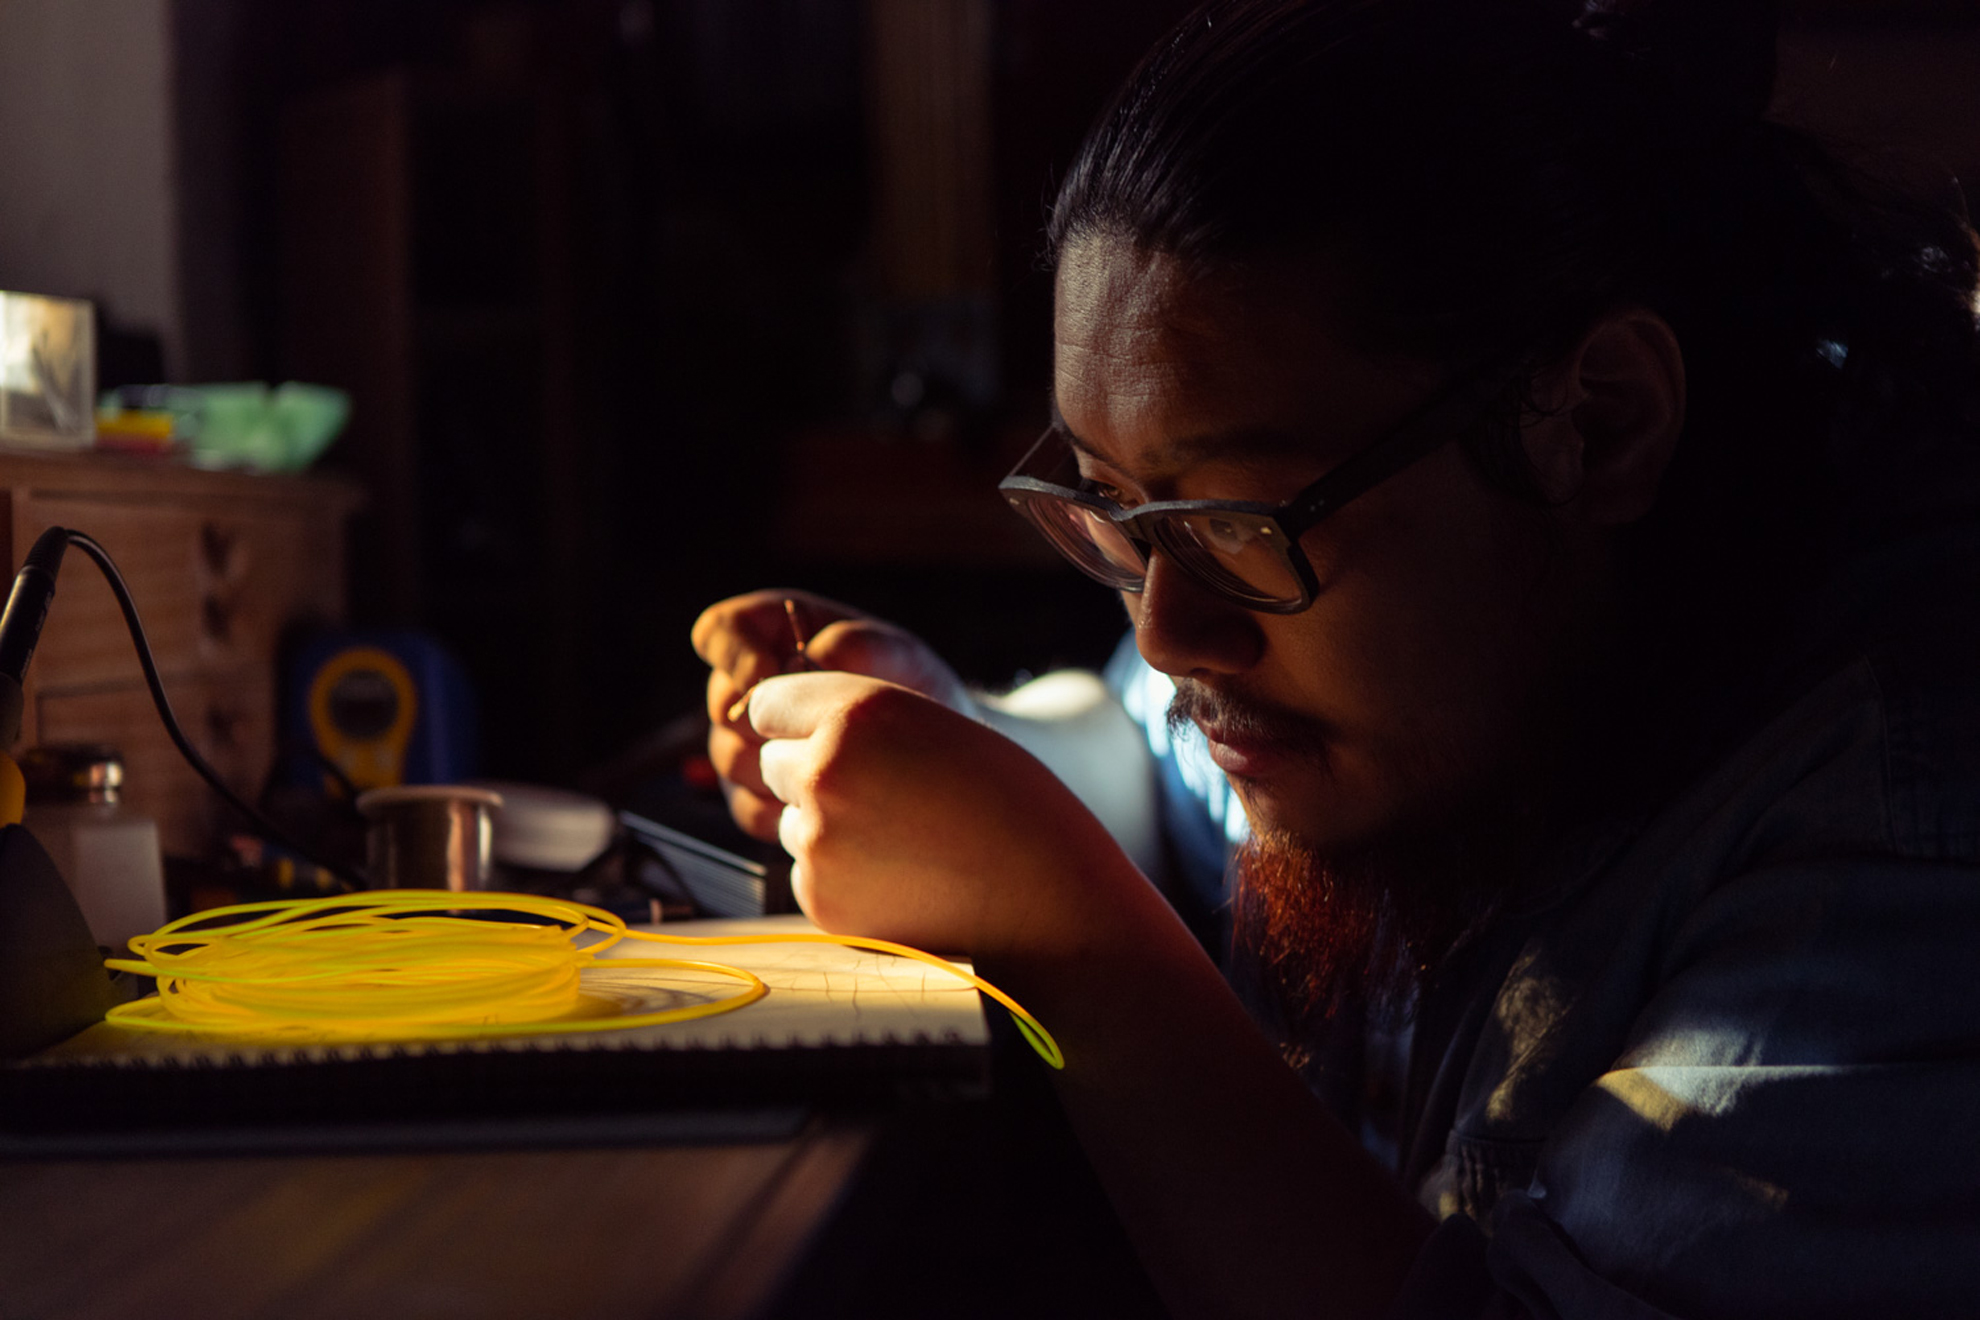 An artist from the video works with neon string.